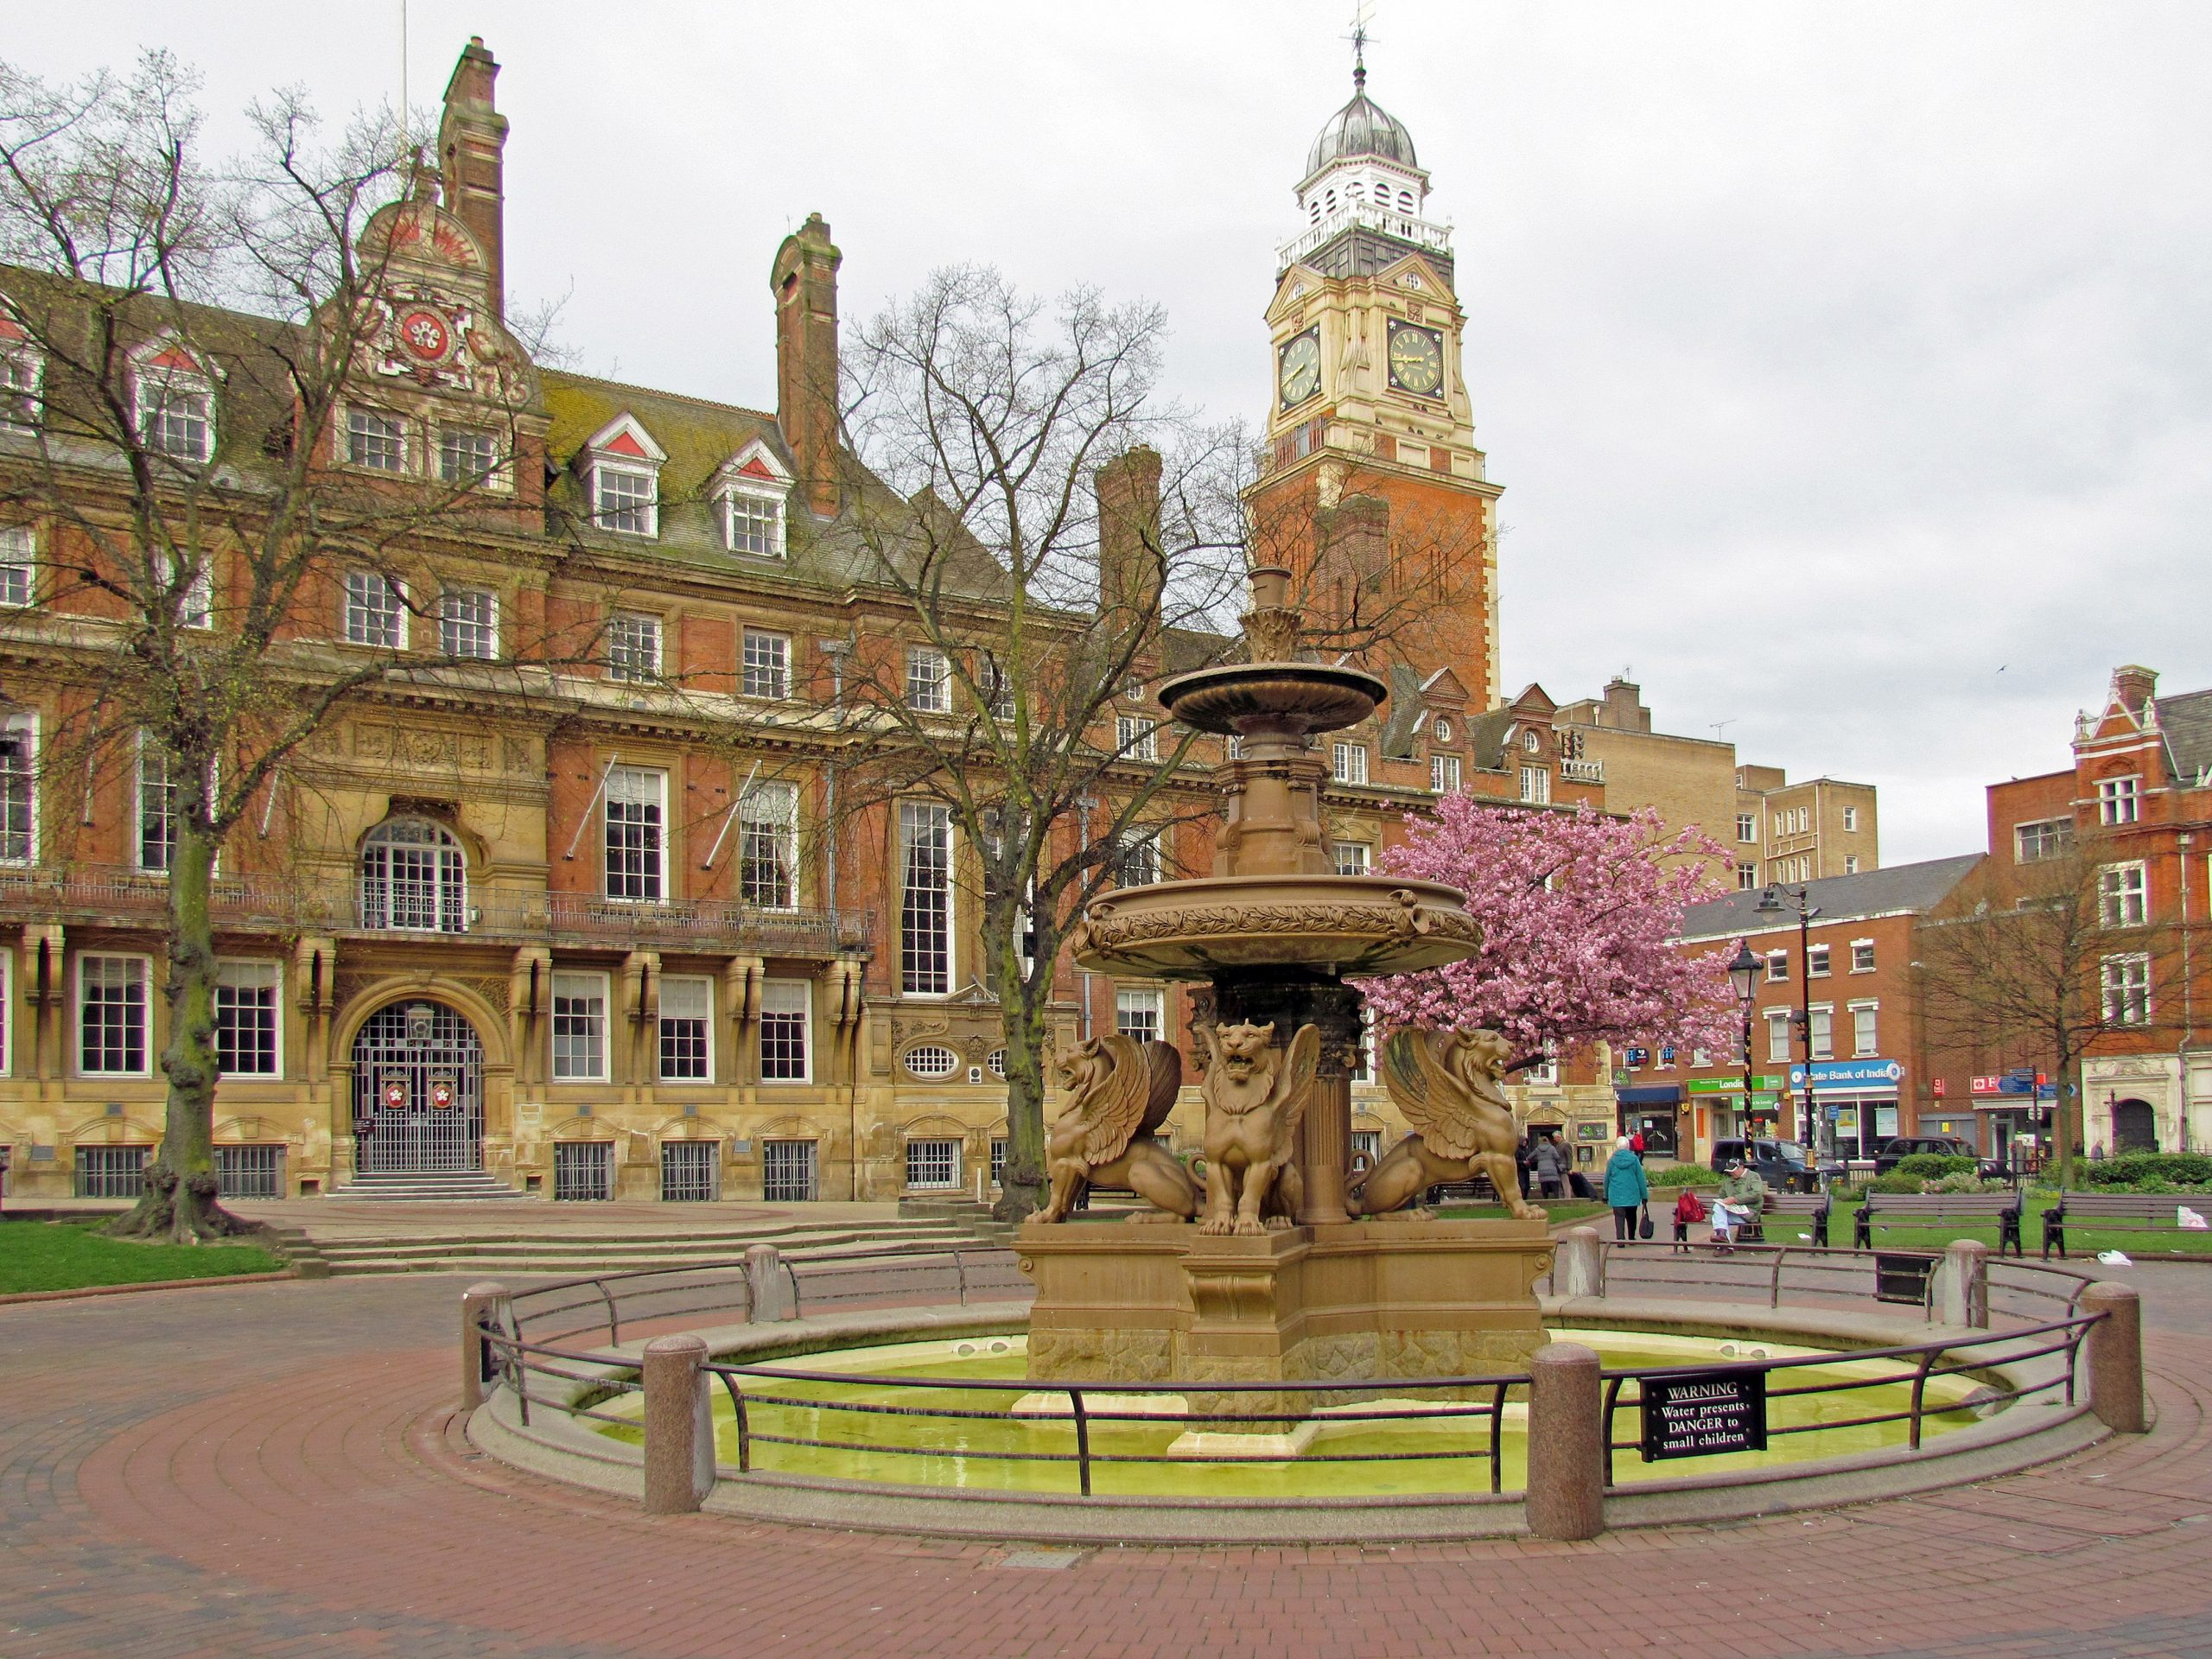 An image of Leicester Town Hall with the Town Hall Square fountain in the foreground.